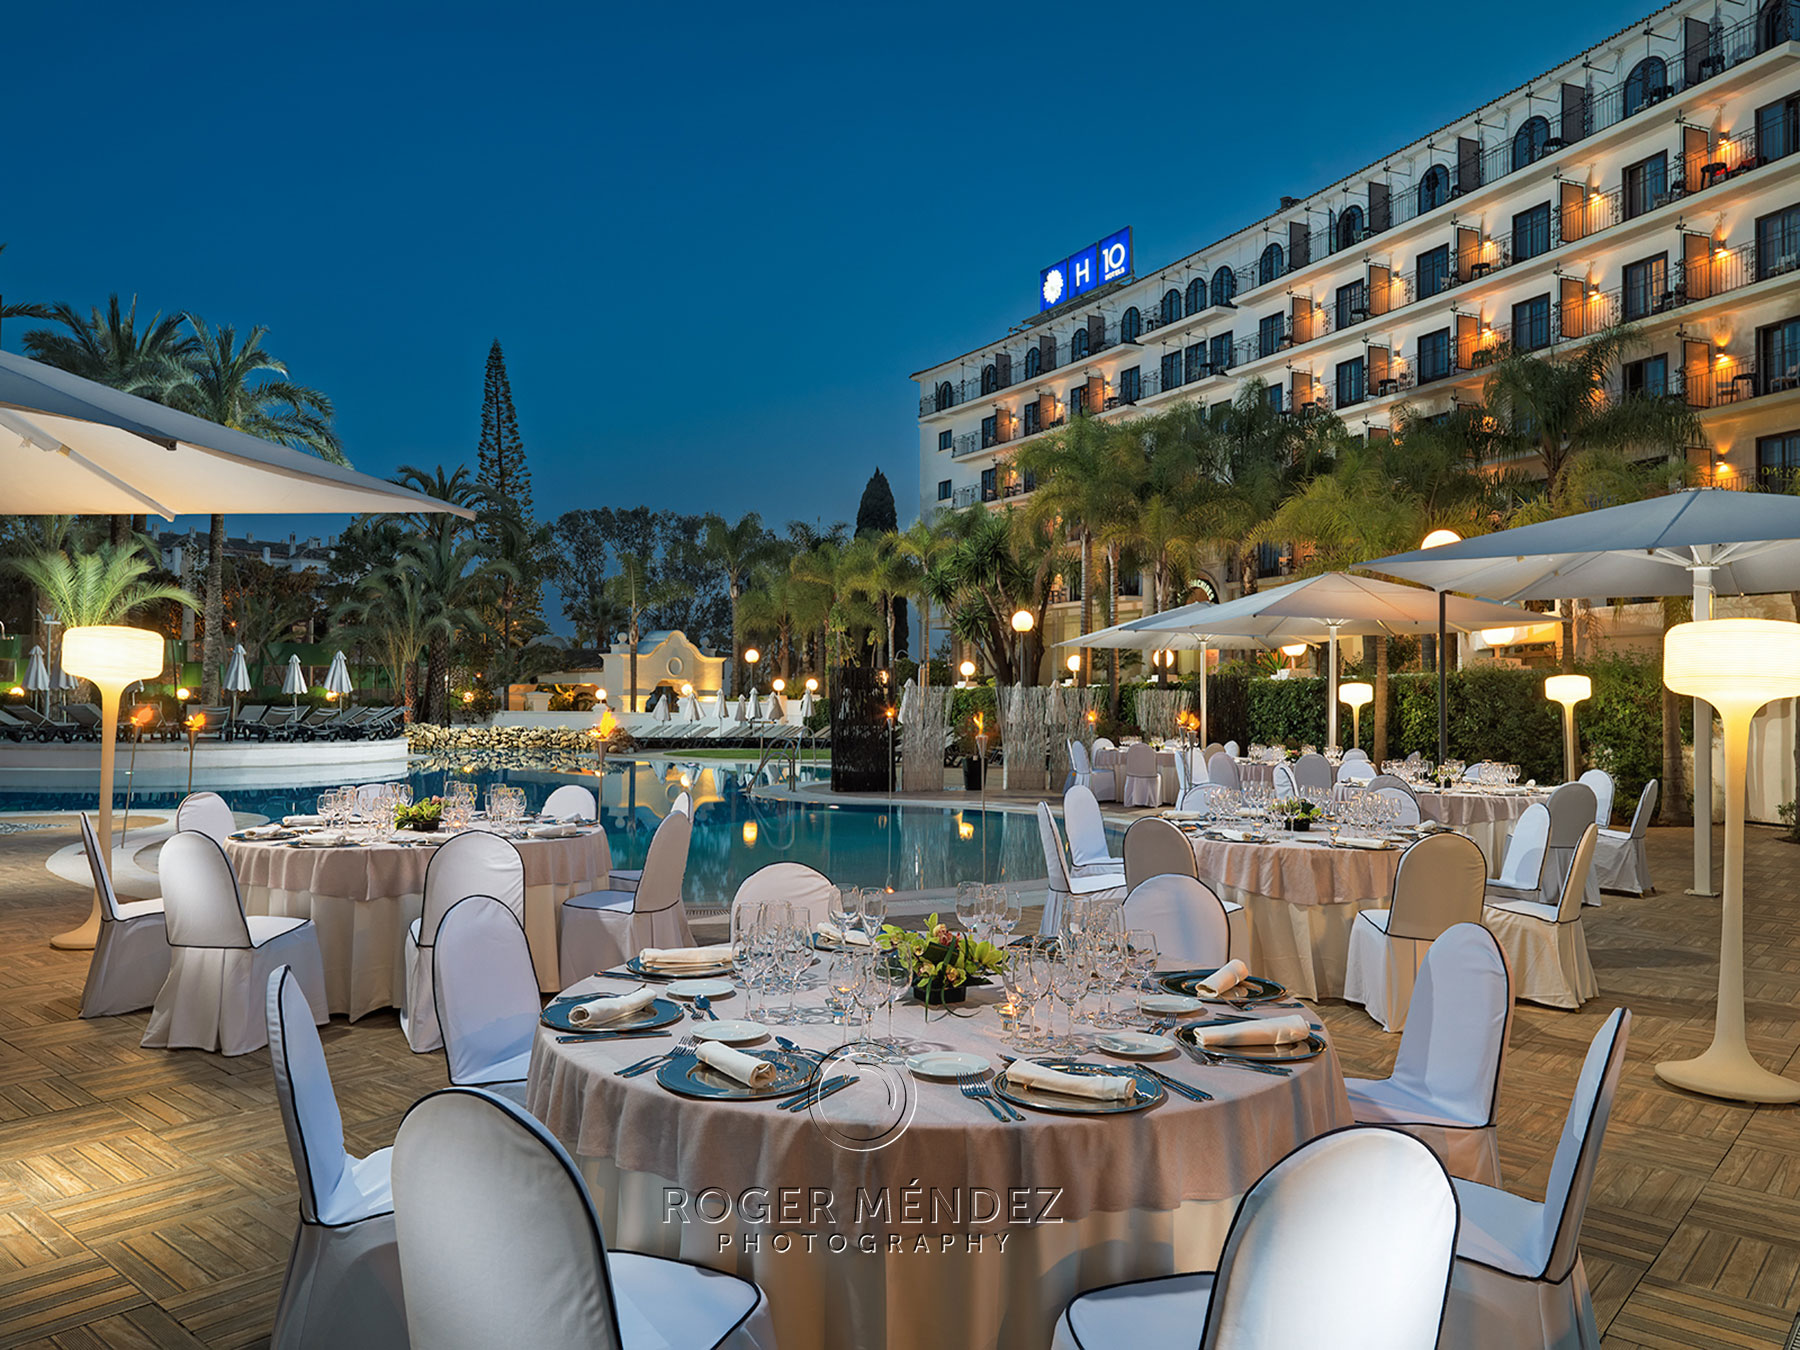 H10 Andalucía Plaza. Banquet setup in swimming pool at sunset